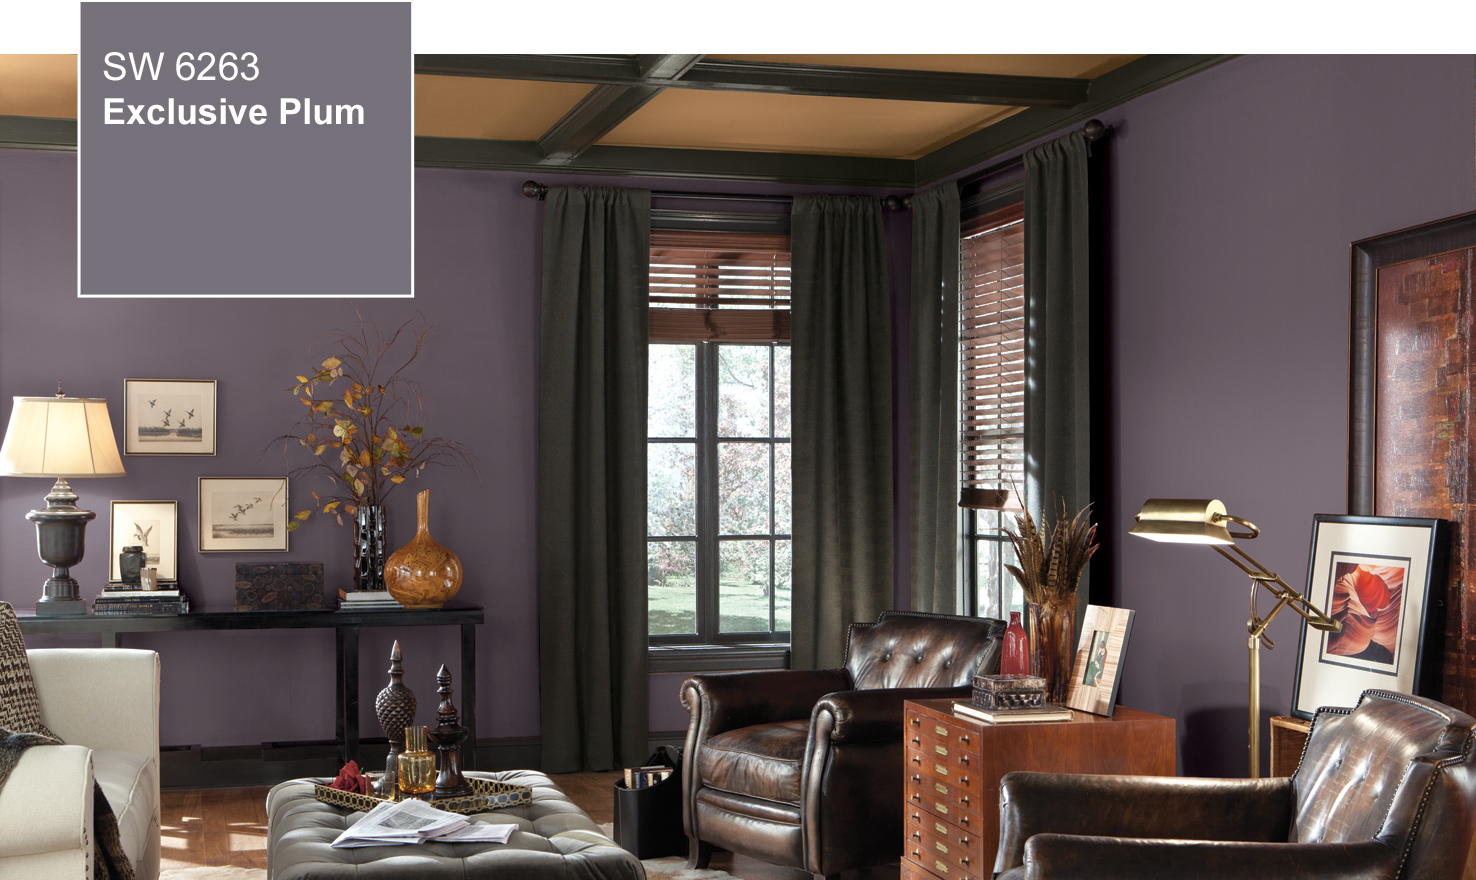 2014 Color The Year Exclusive Plum SW 6263 by